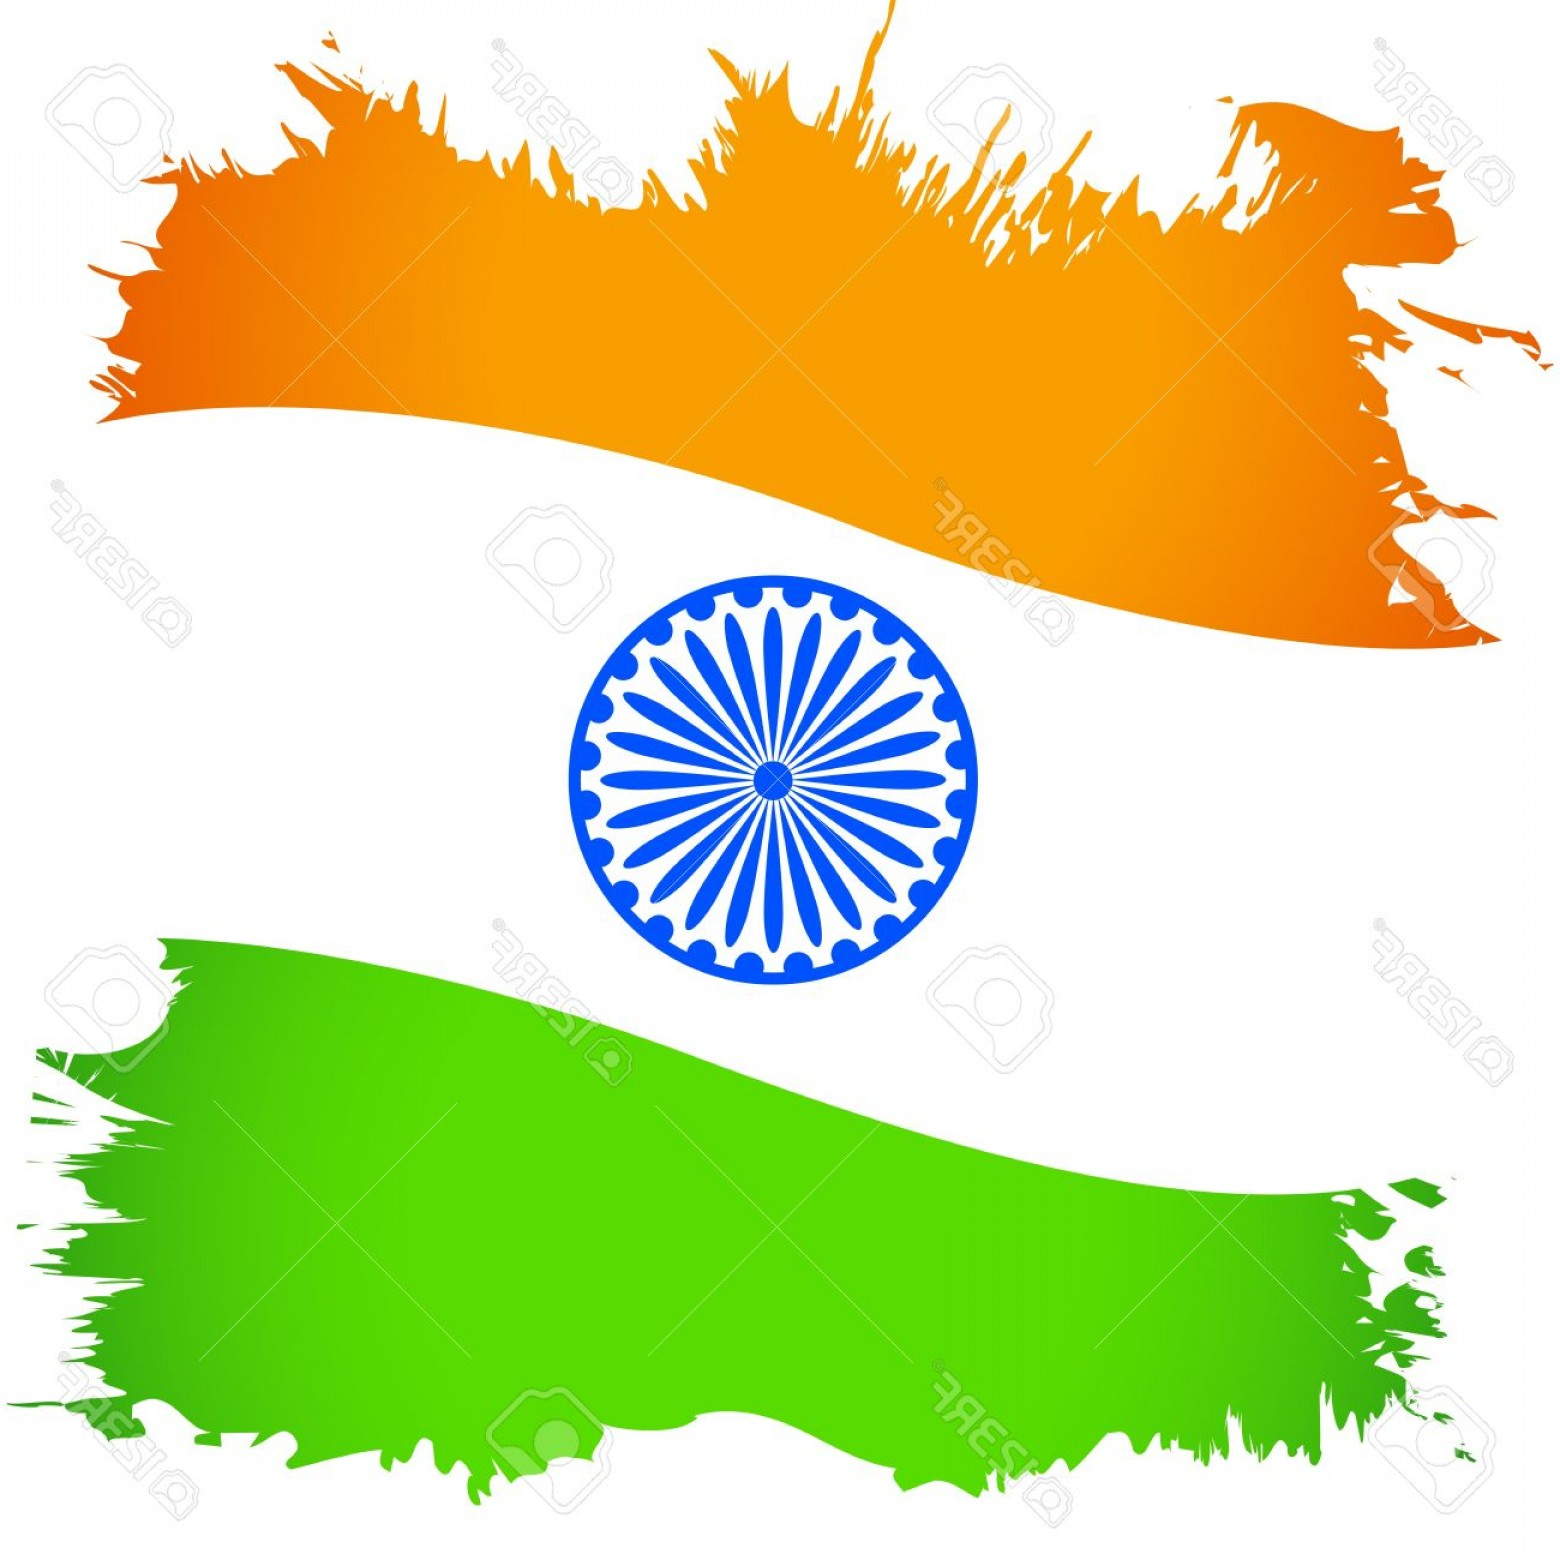 India Flag Vector: Photoillustration Of Abstract Indian Flag With Grunge